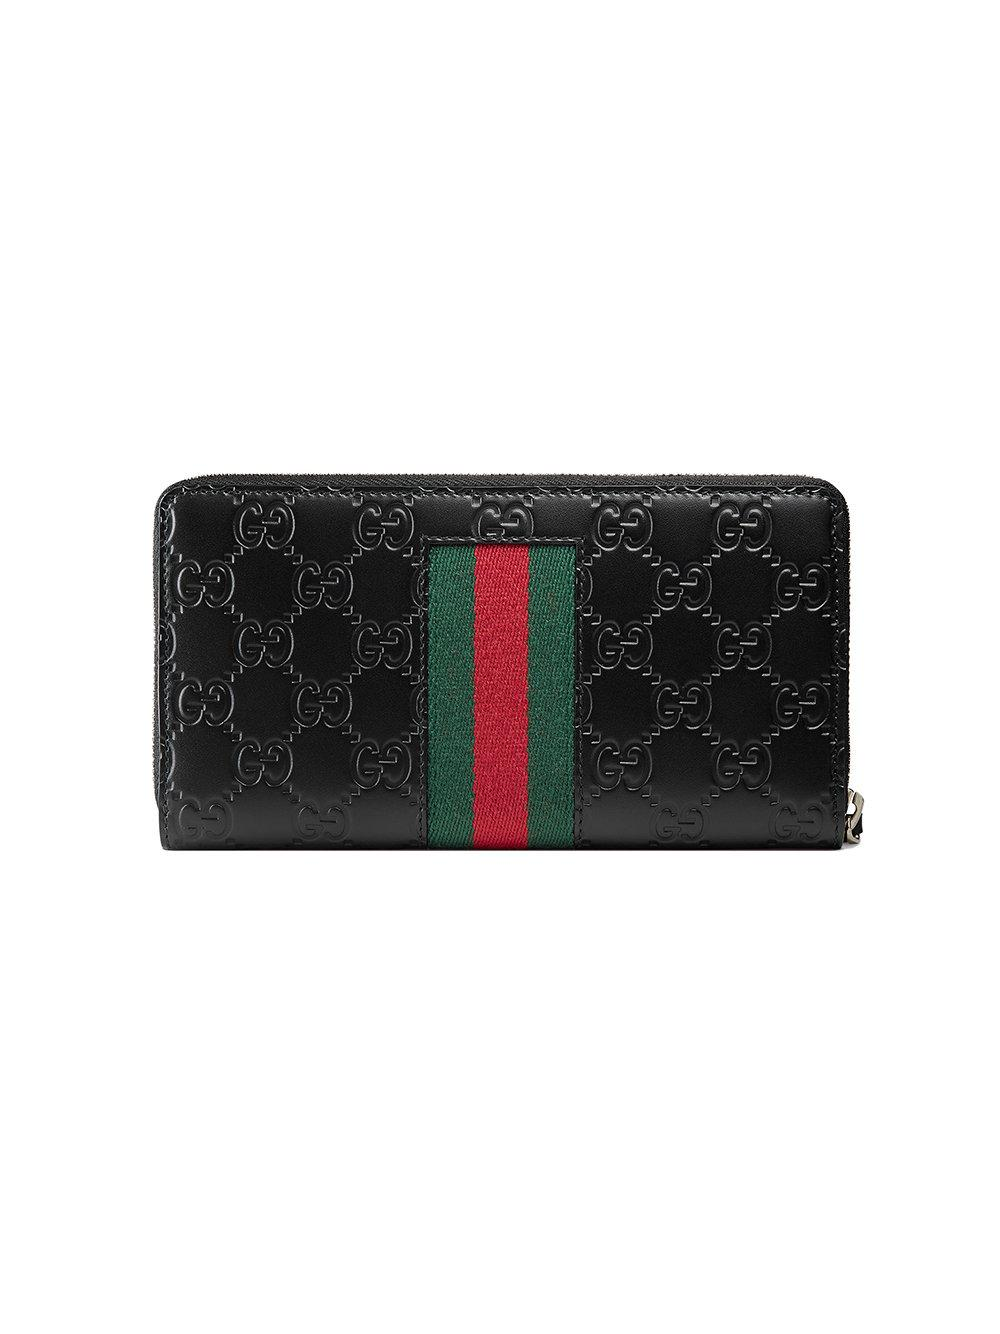 a4074acd286b Gucci - Black Signature Web Wallet for Men - Lyst. View fullscreen